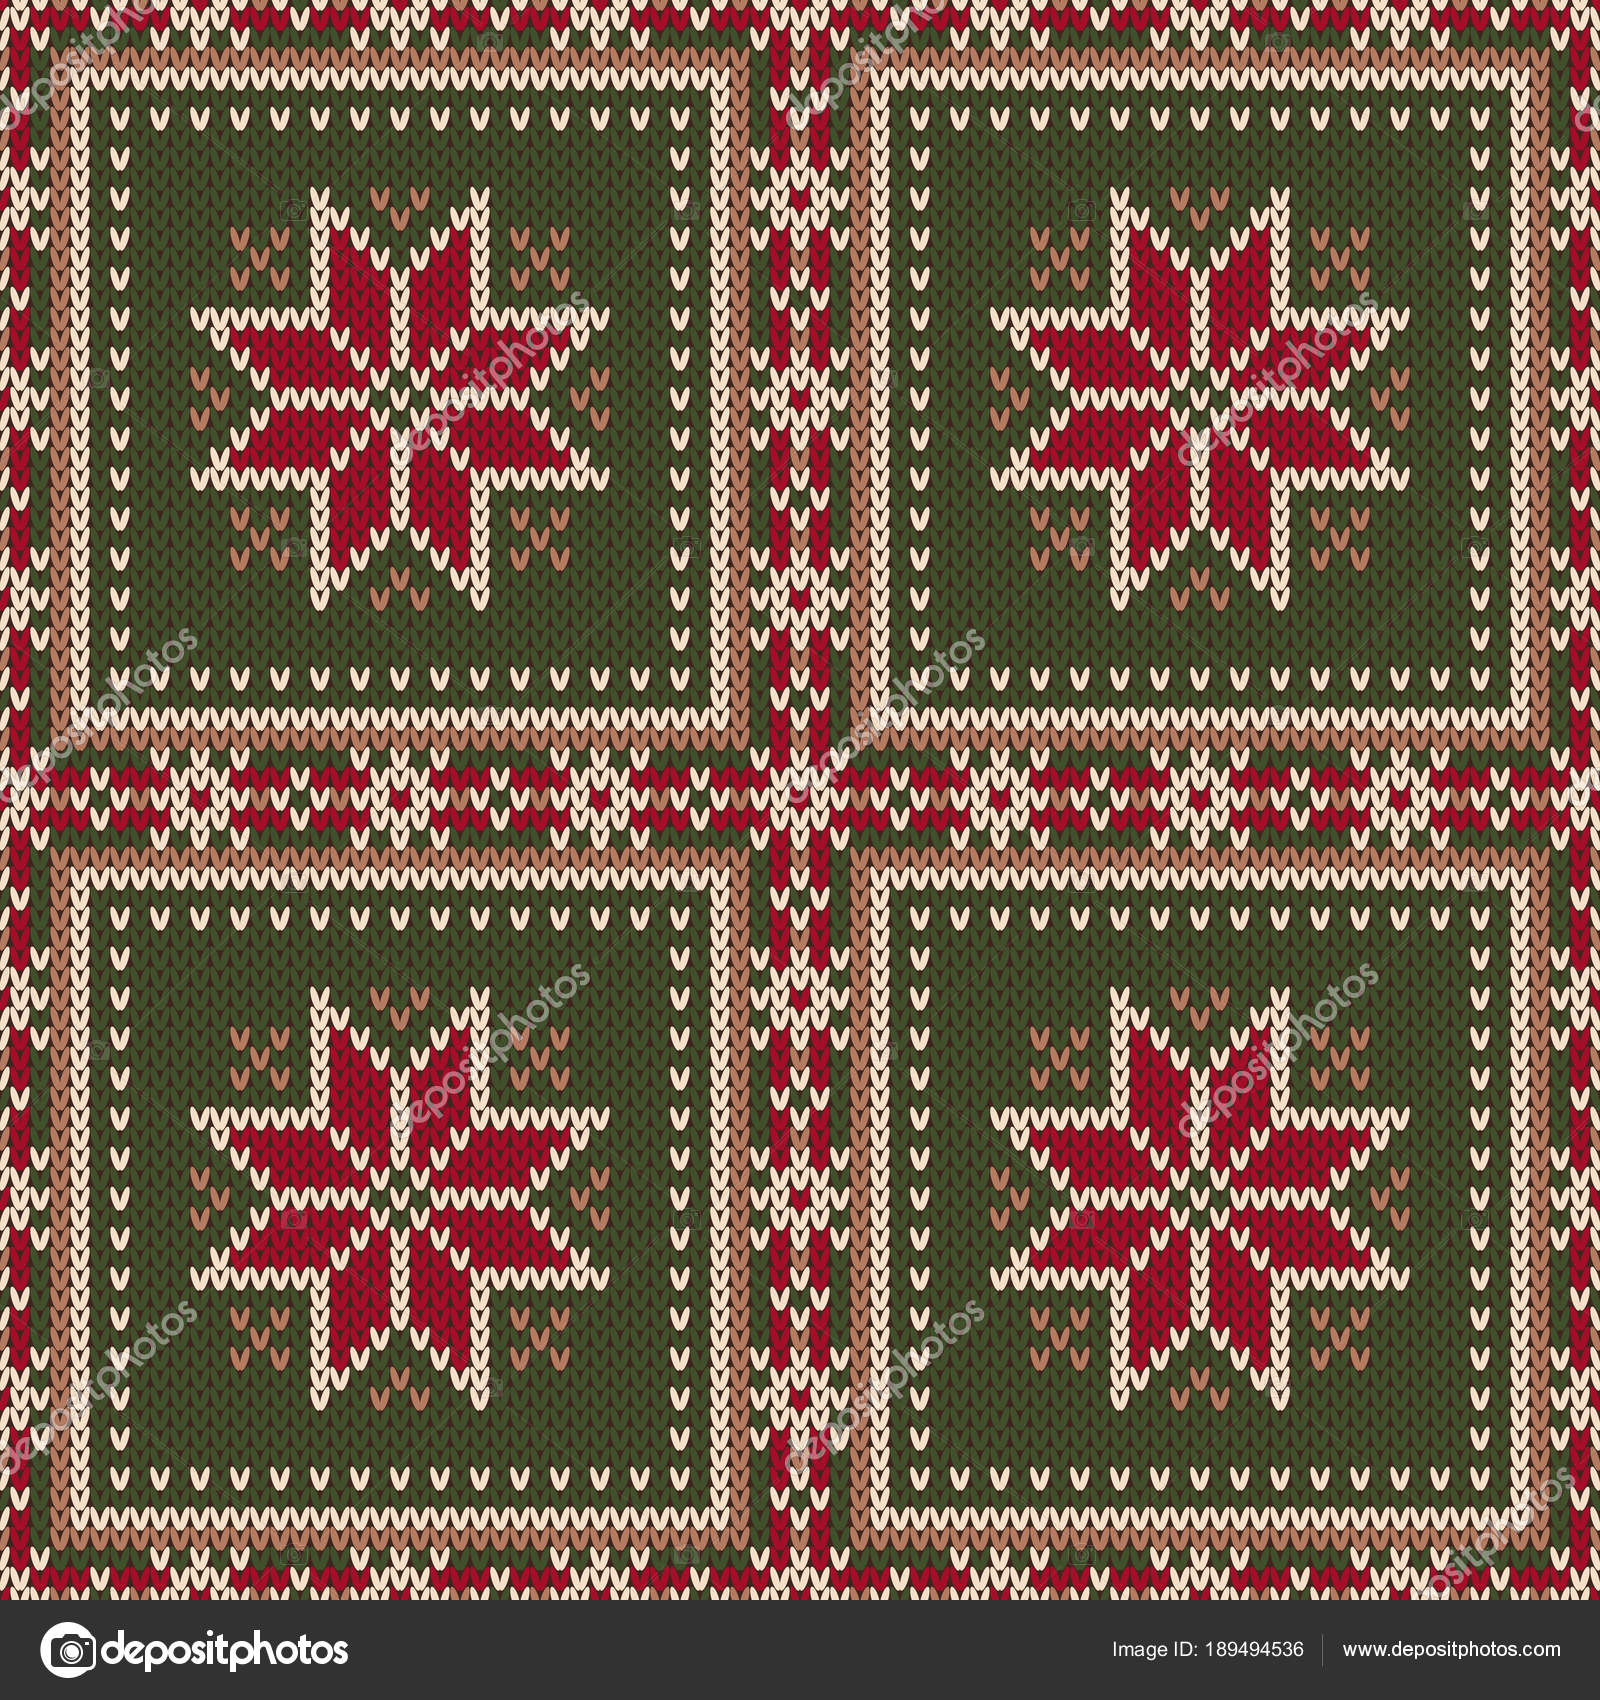 430eb385fed9d Winter Holiday Seamless Knitted Pattern with a Snowflakes. Knitting Sweater  Design. Wool Knitted Texture